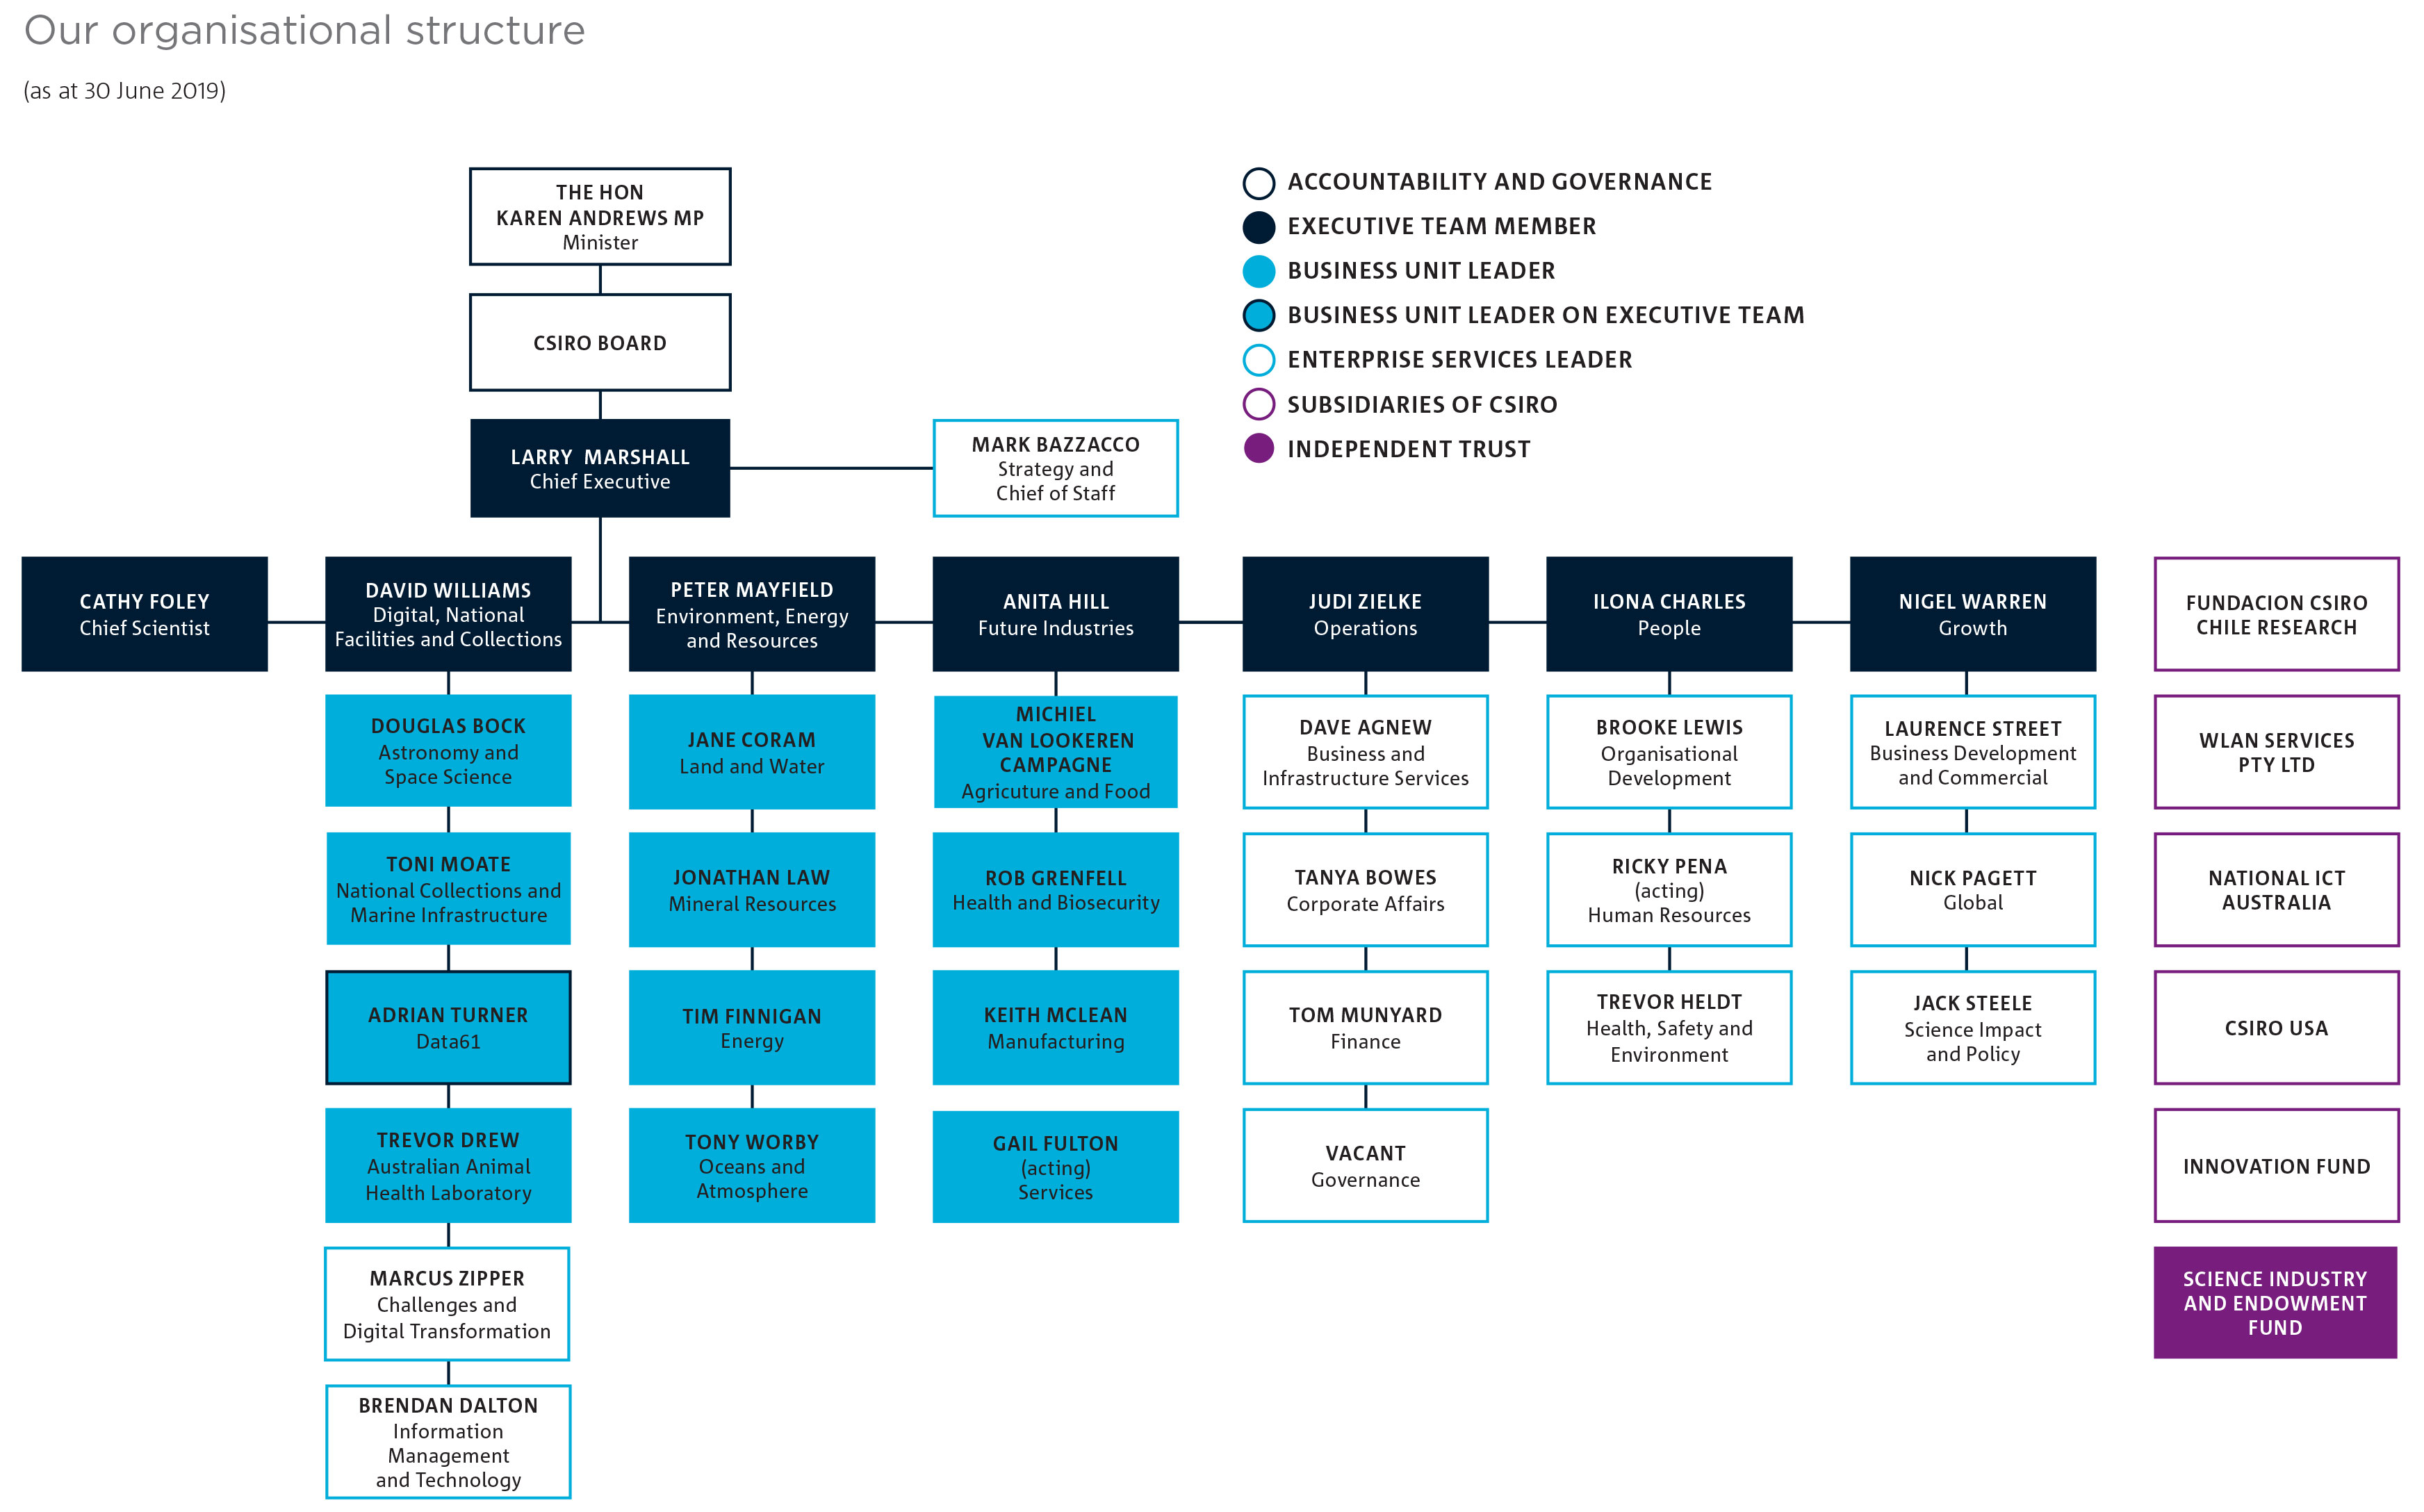 Organisational chart showing the CSIRO structure as at 29 June 2018.